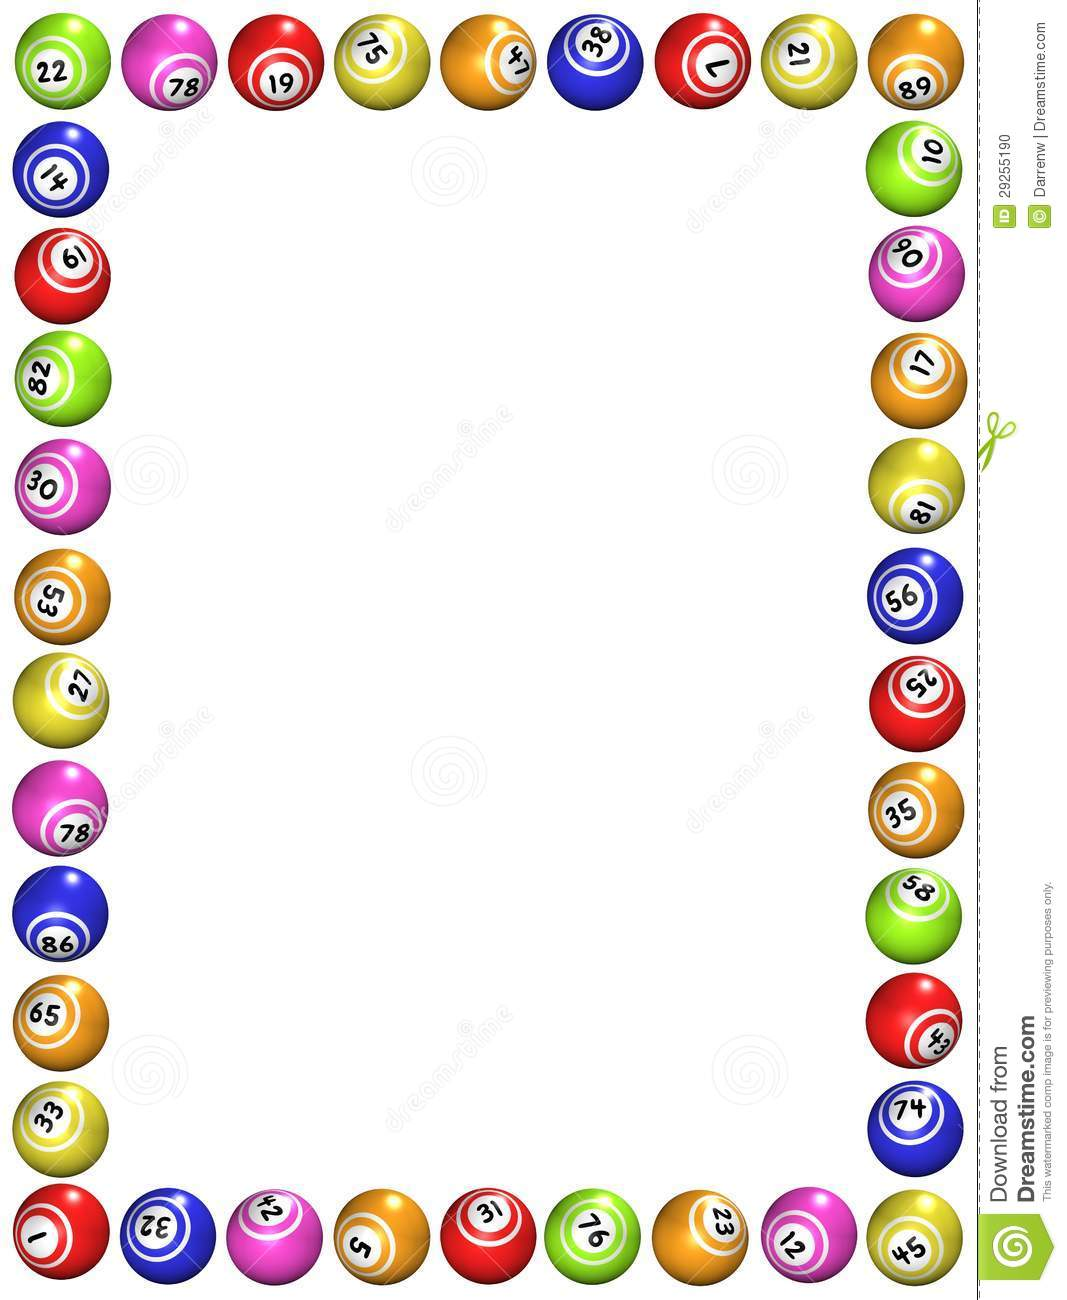 numbers border clipart - Clipground